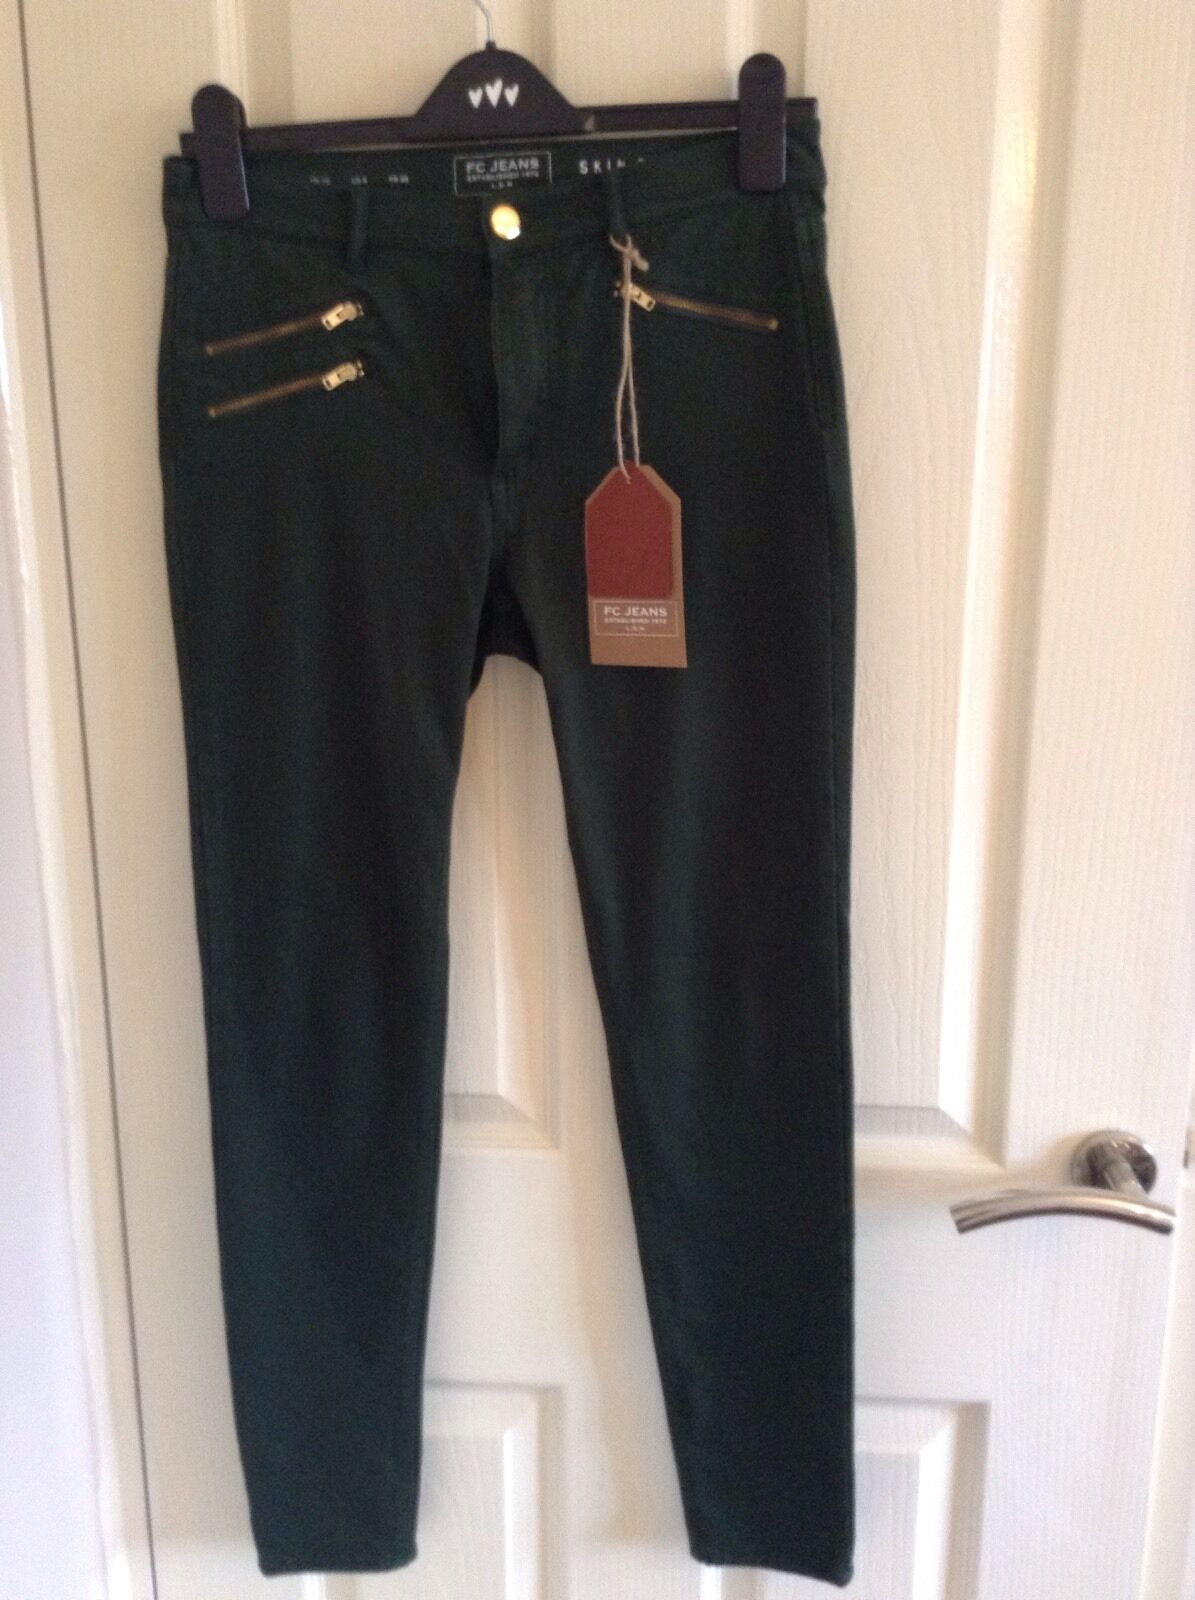 French Connection green skin tight jeans, size 10 (BNWT) RRP